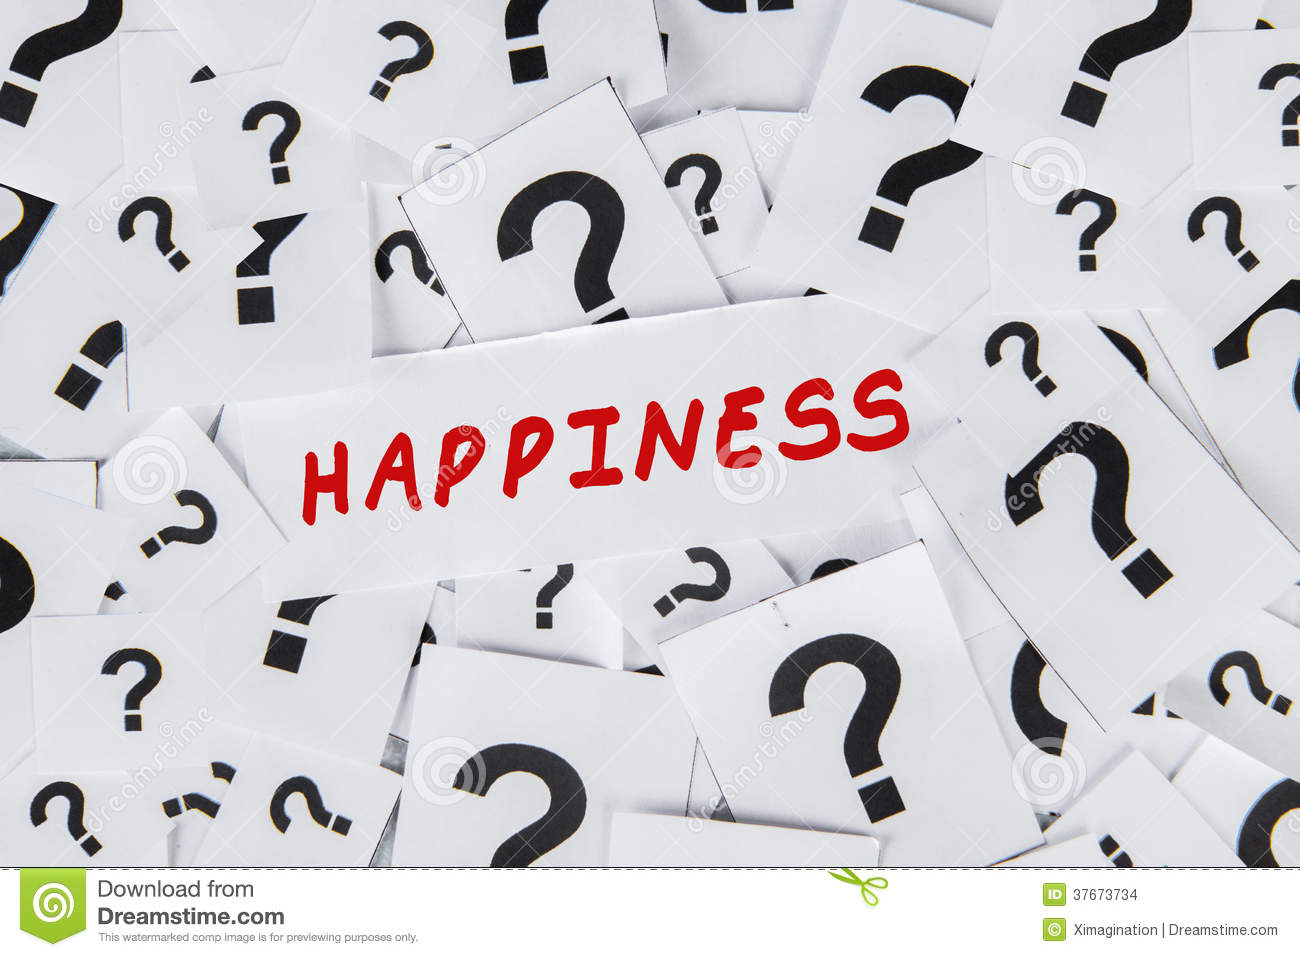 Happiness and question